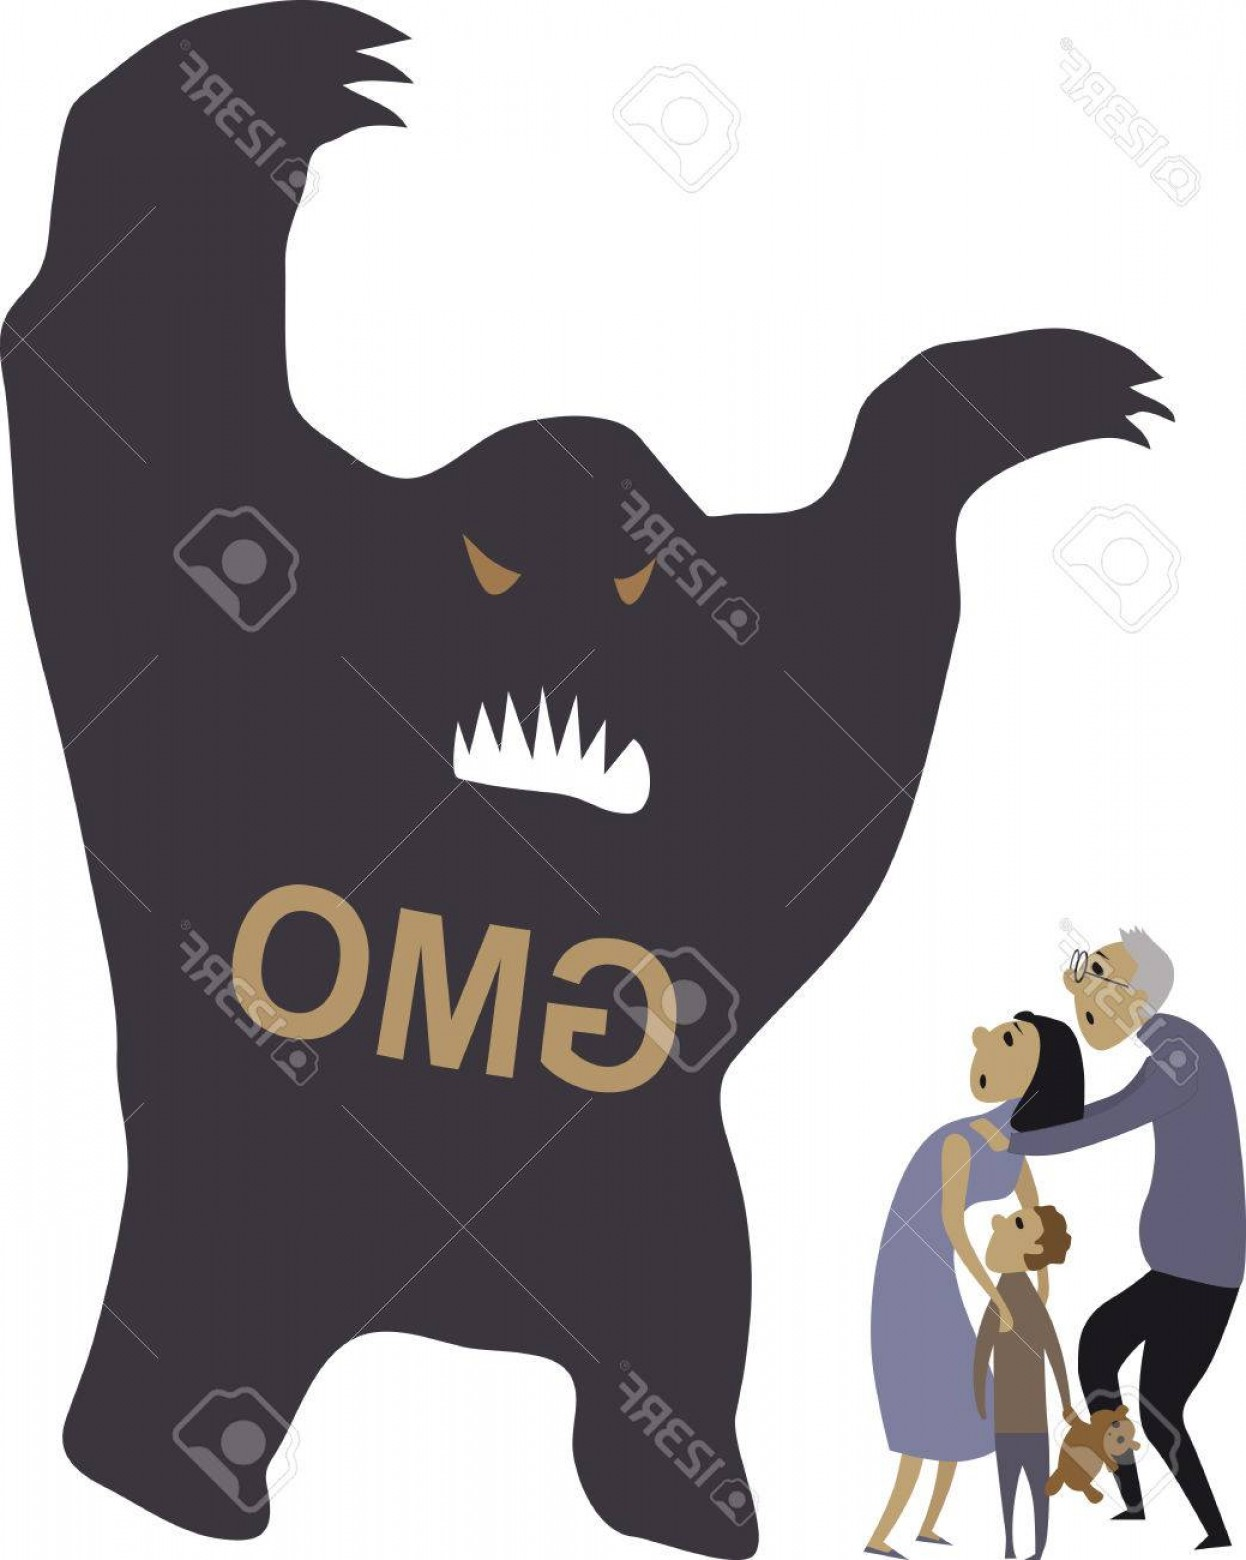 Vector Organisms On A Person: Photostock Vector People Scared Of A Monster Representing Genetically Modified Organisms Vector Illustration